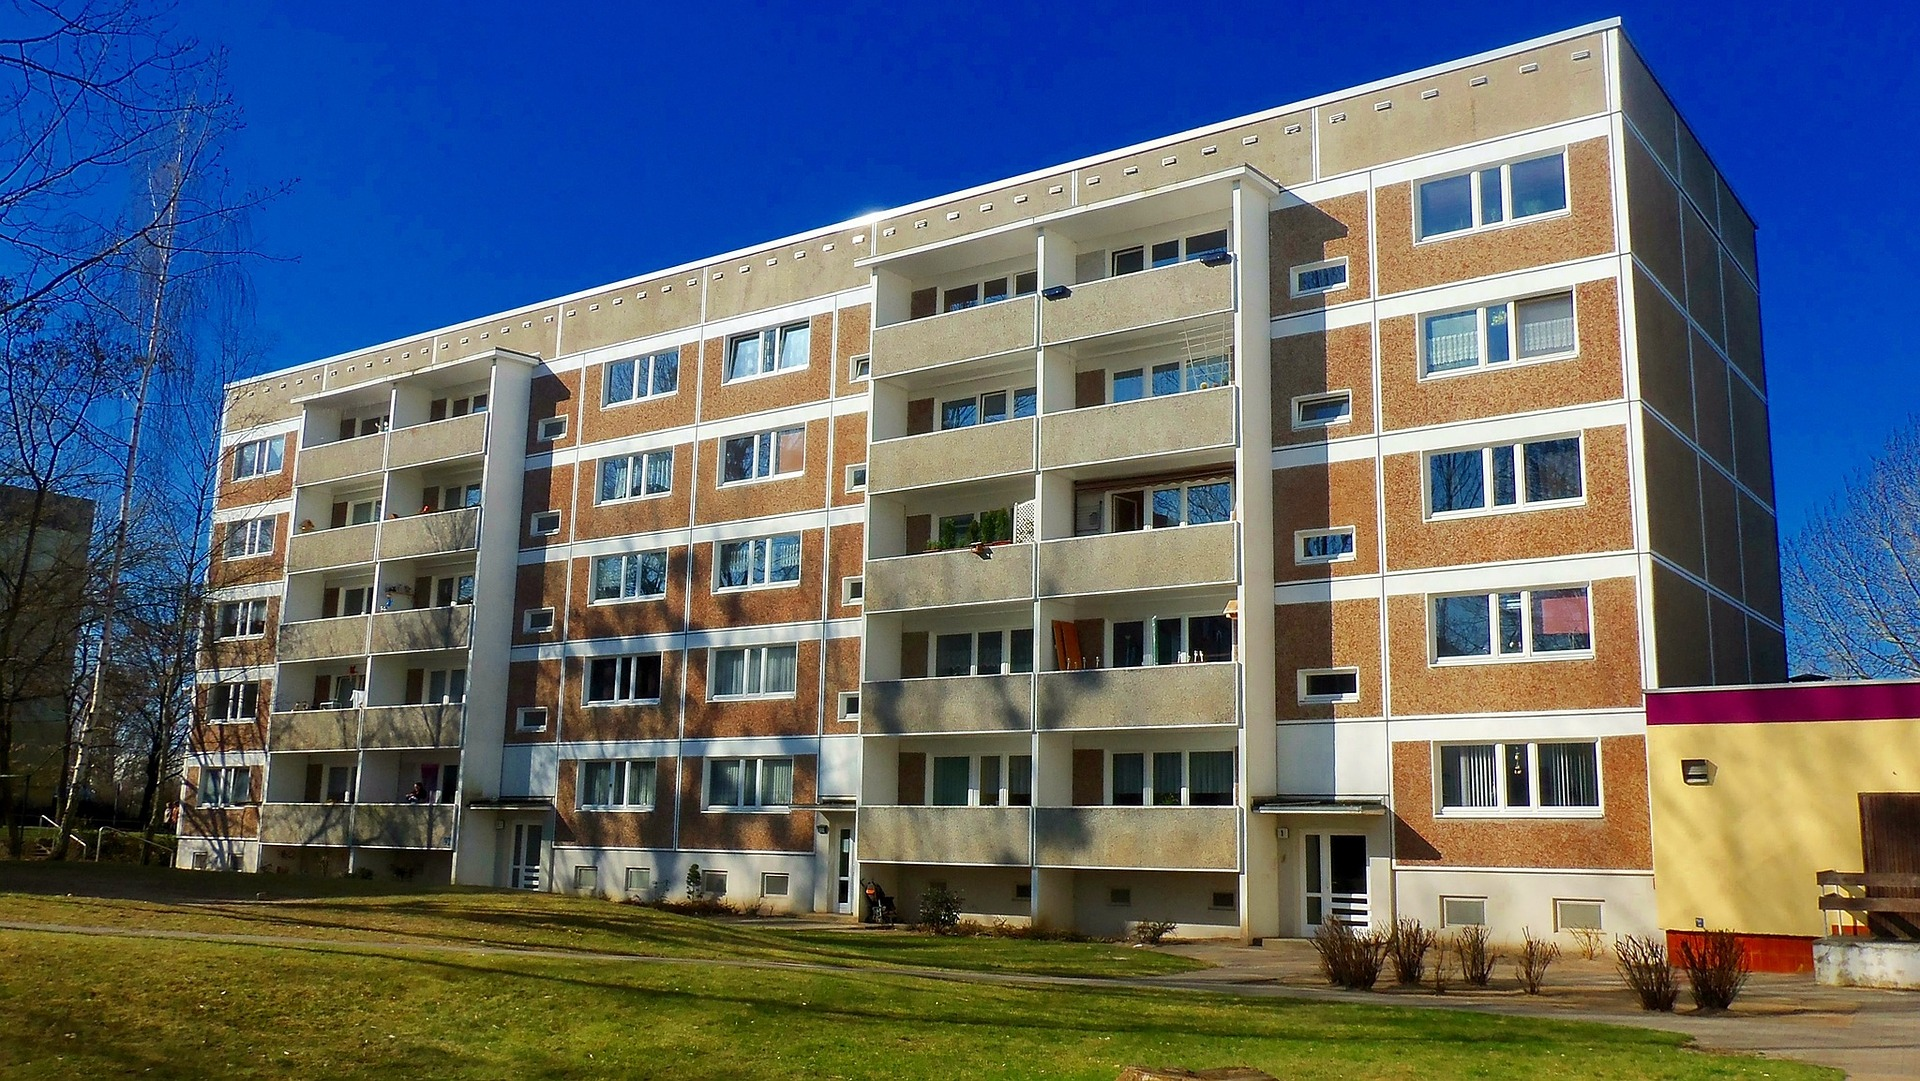 appartment-building-835817_1920